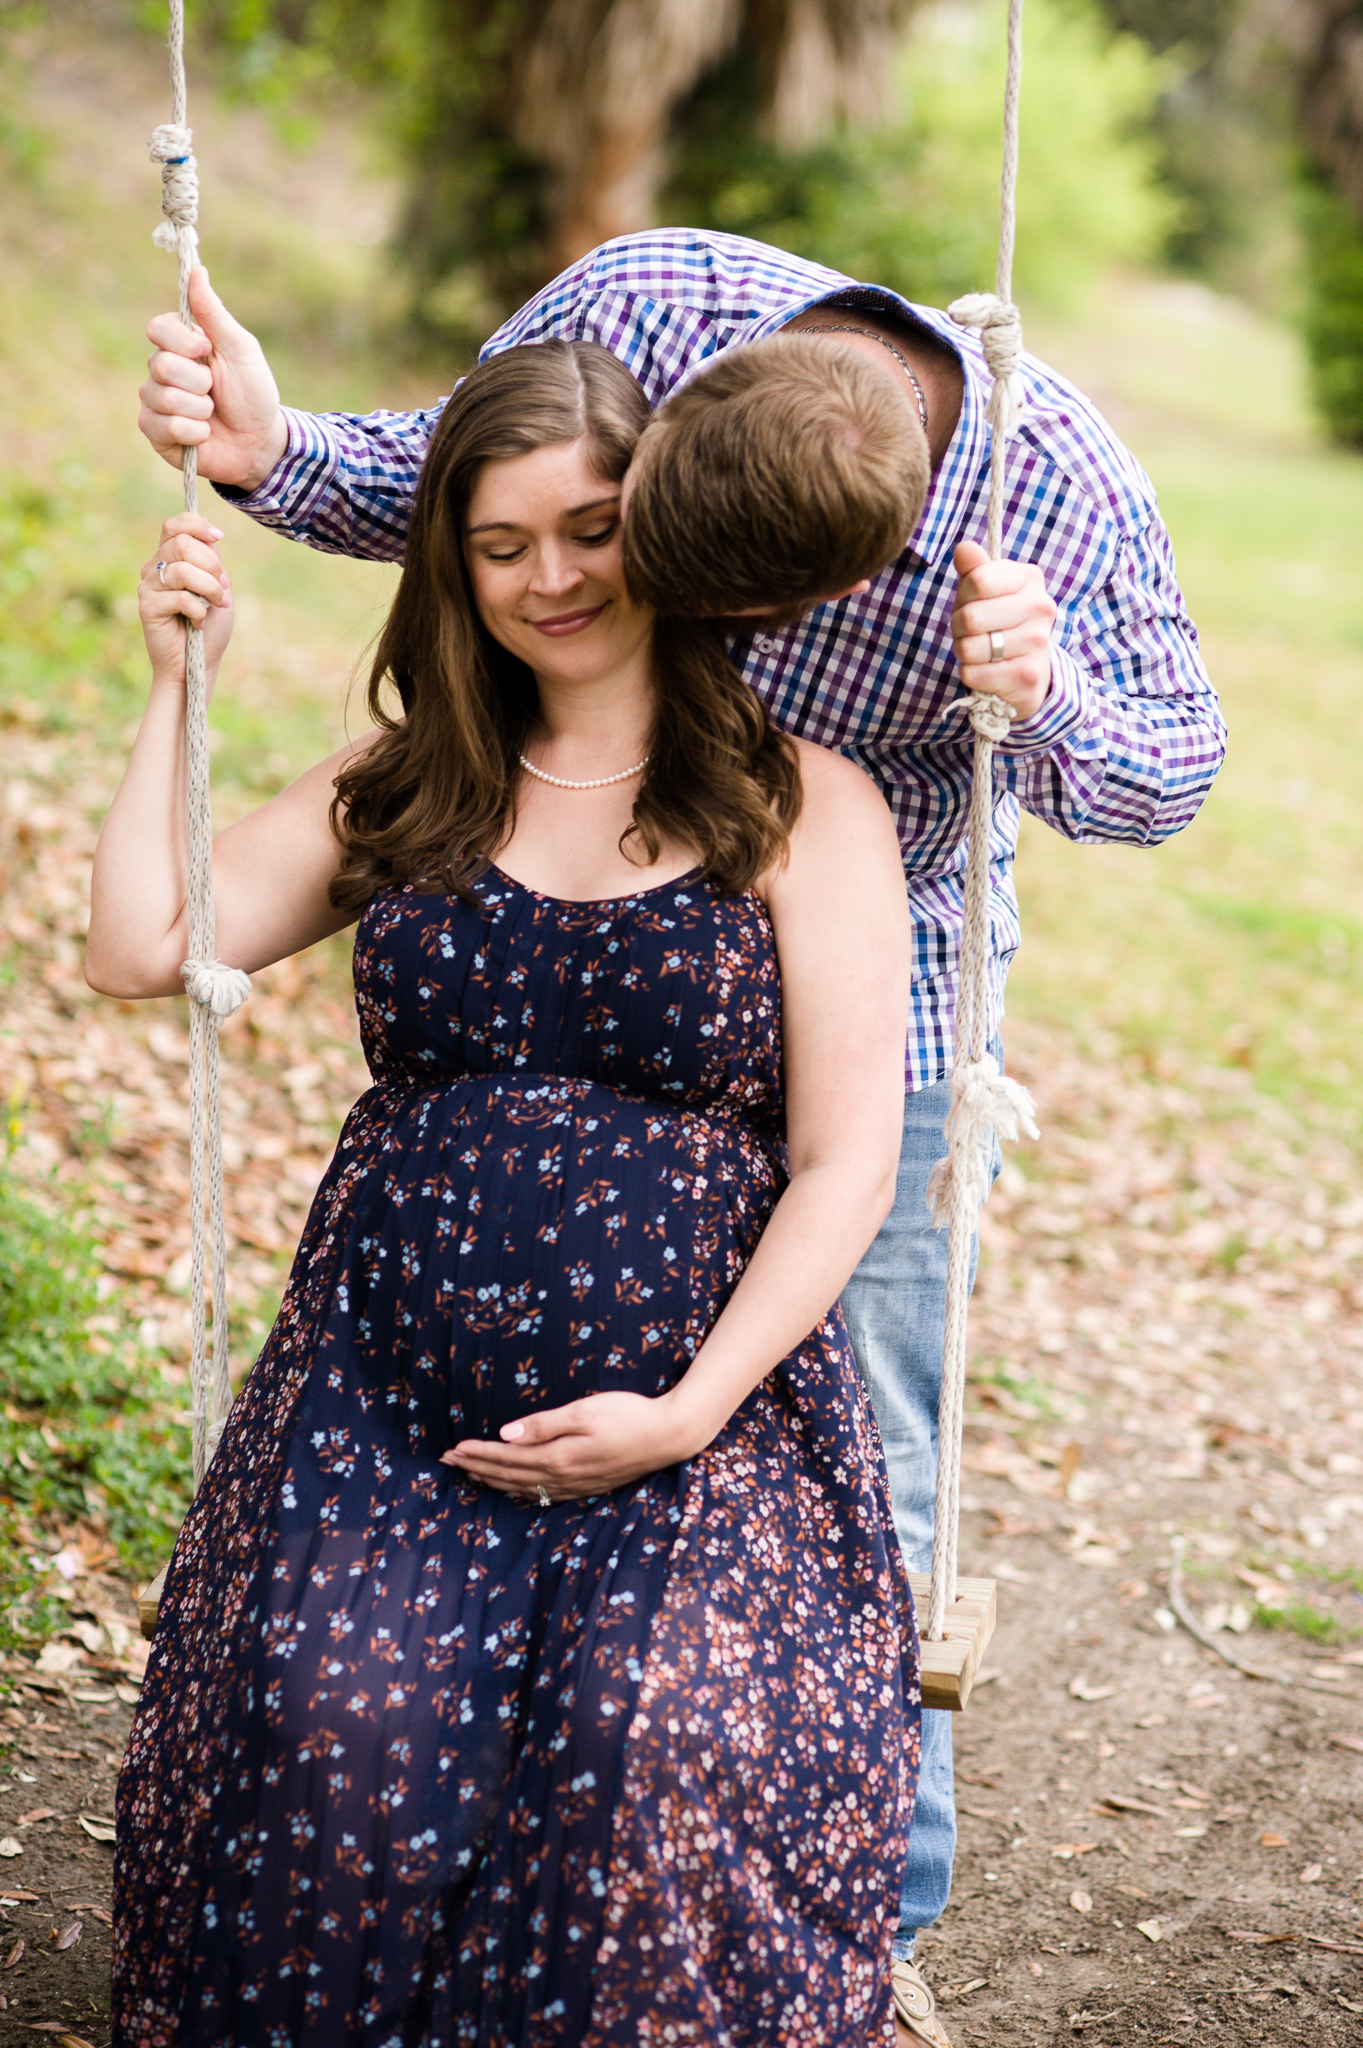 beaufort-south-carolina-maternity-portraits-2444.JPG